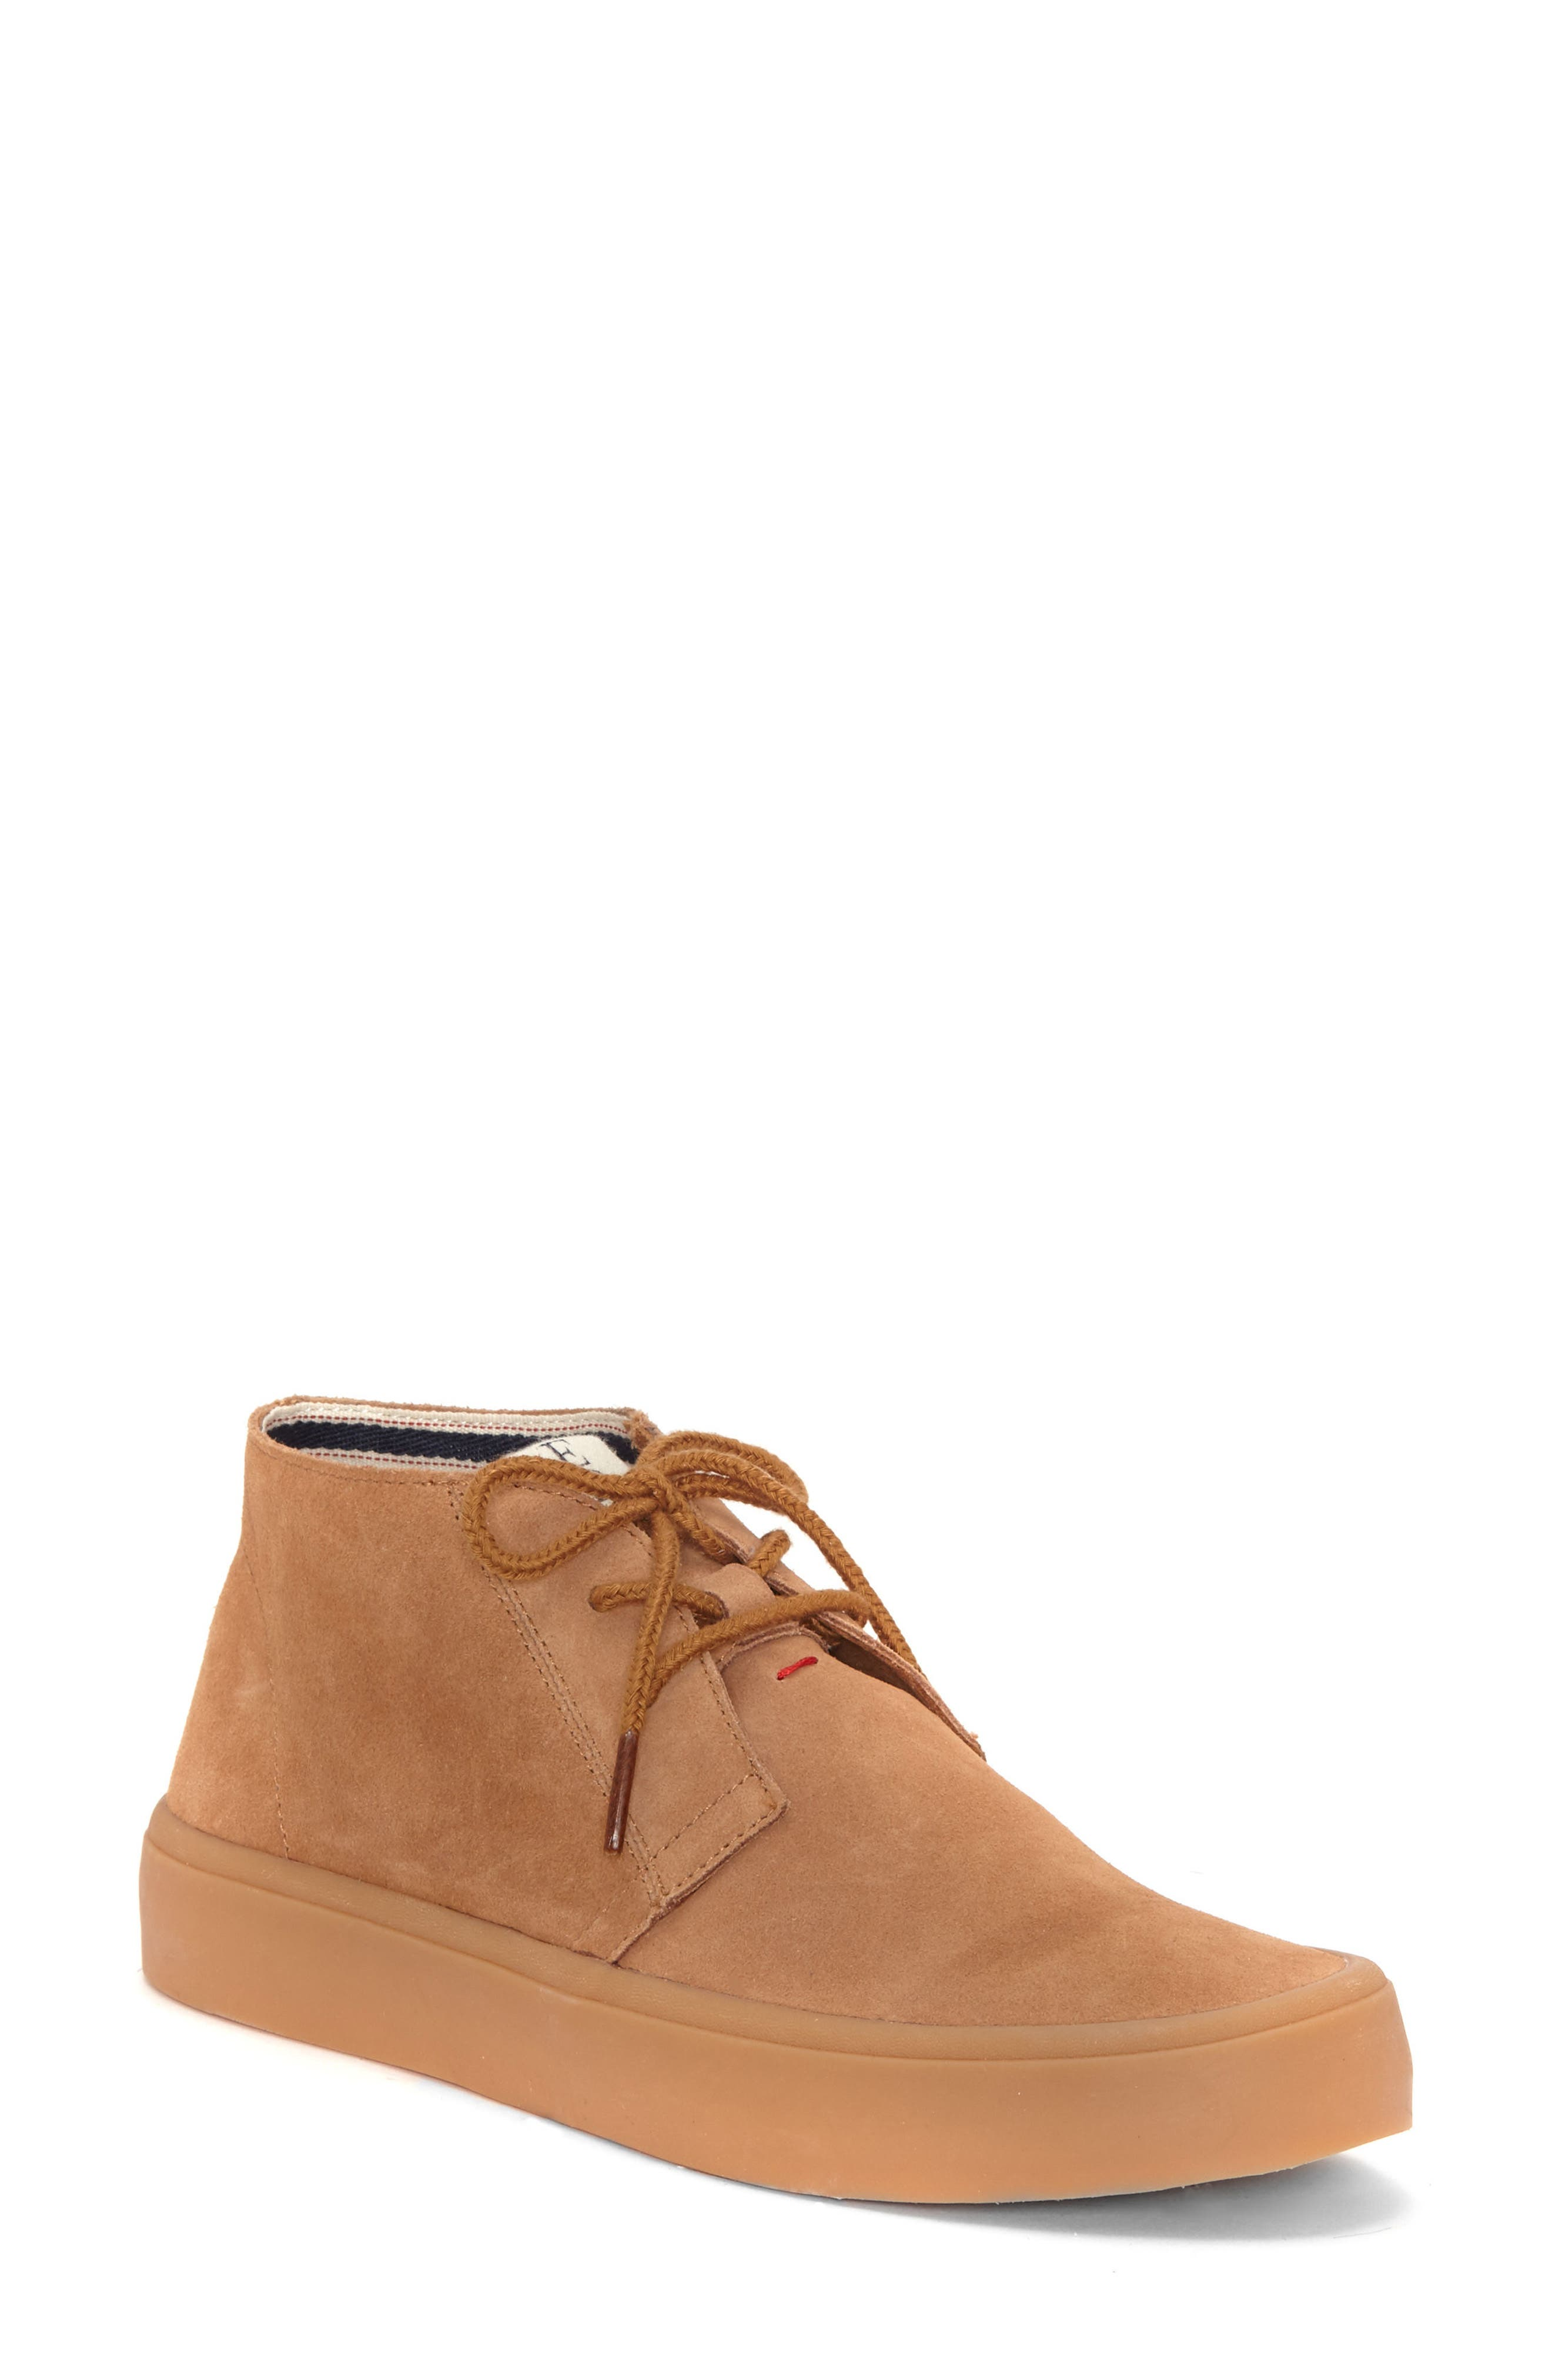 Dax Chukka Sneaker,                             Main thumbnail 1, color,                             Honey Suede